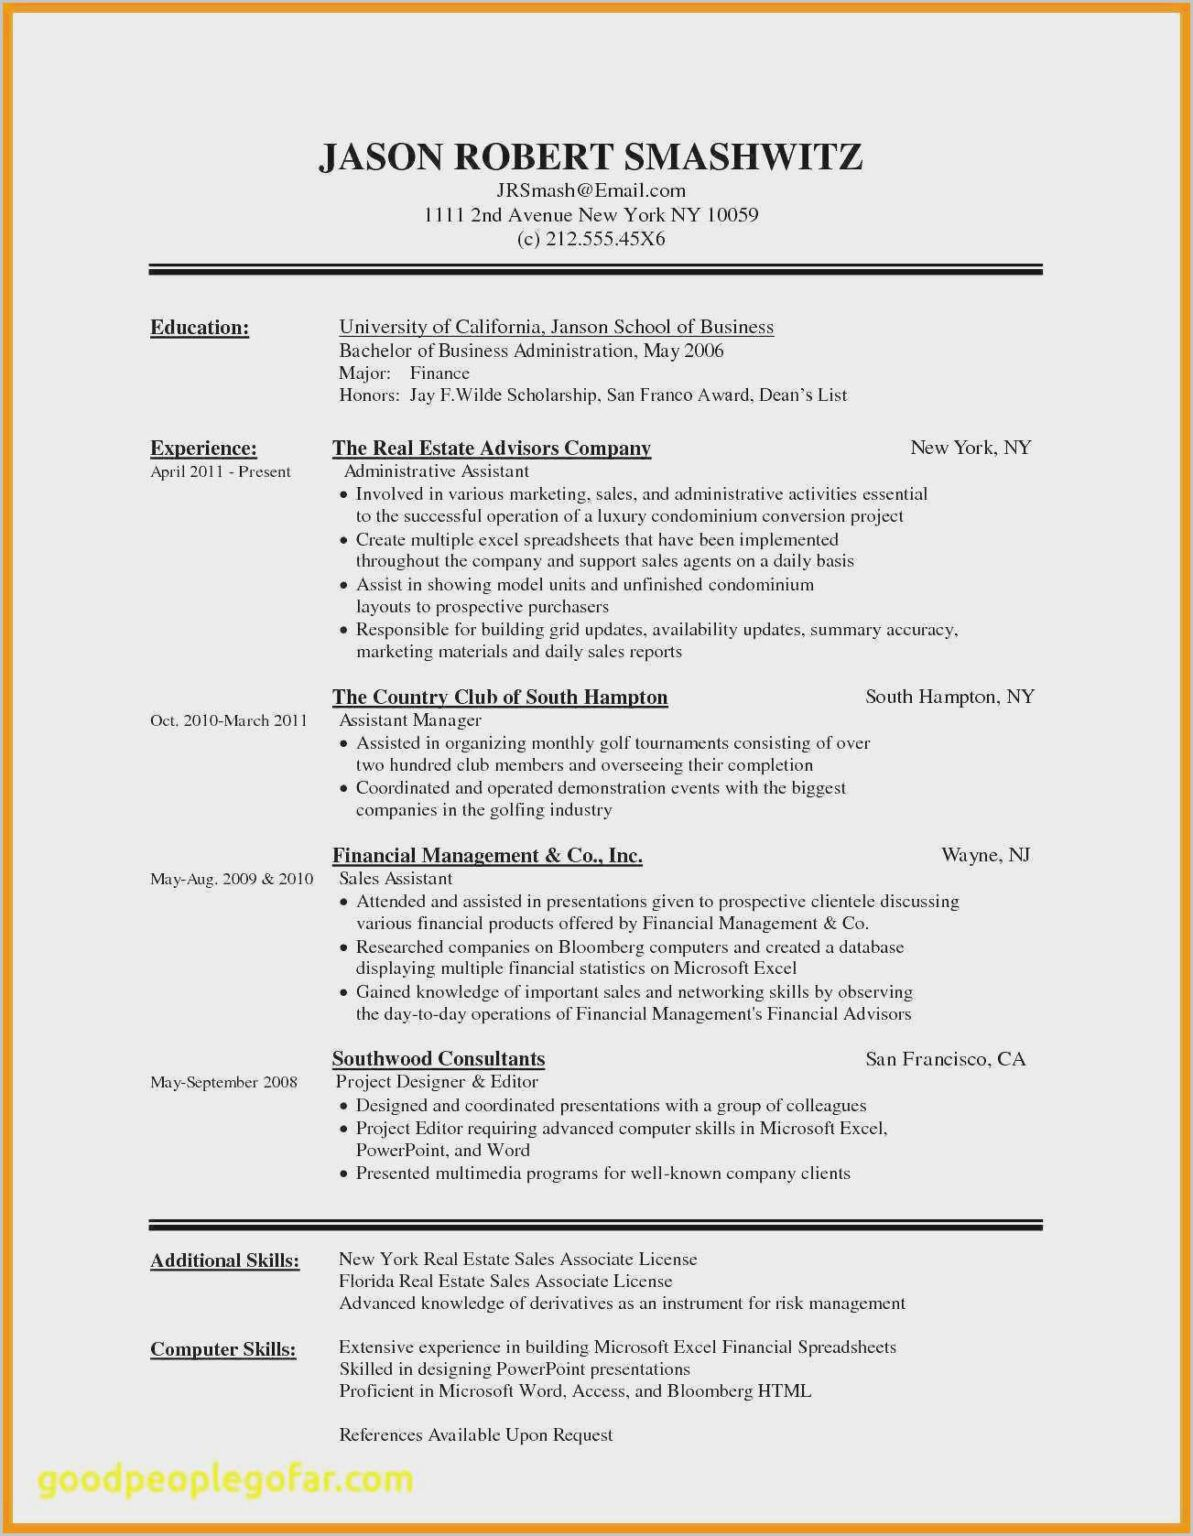 Free Sample Email Cover Letter For Resume Resume Best For Resume Templates Microsoft Word 201 In 2020 Resume Template Word Resume Template Free Job Resume Template